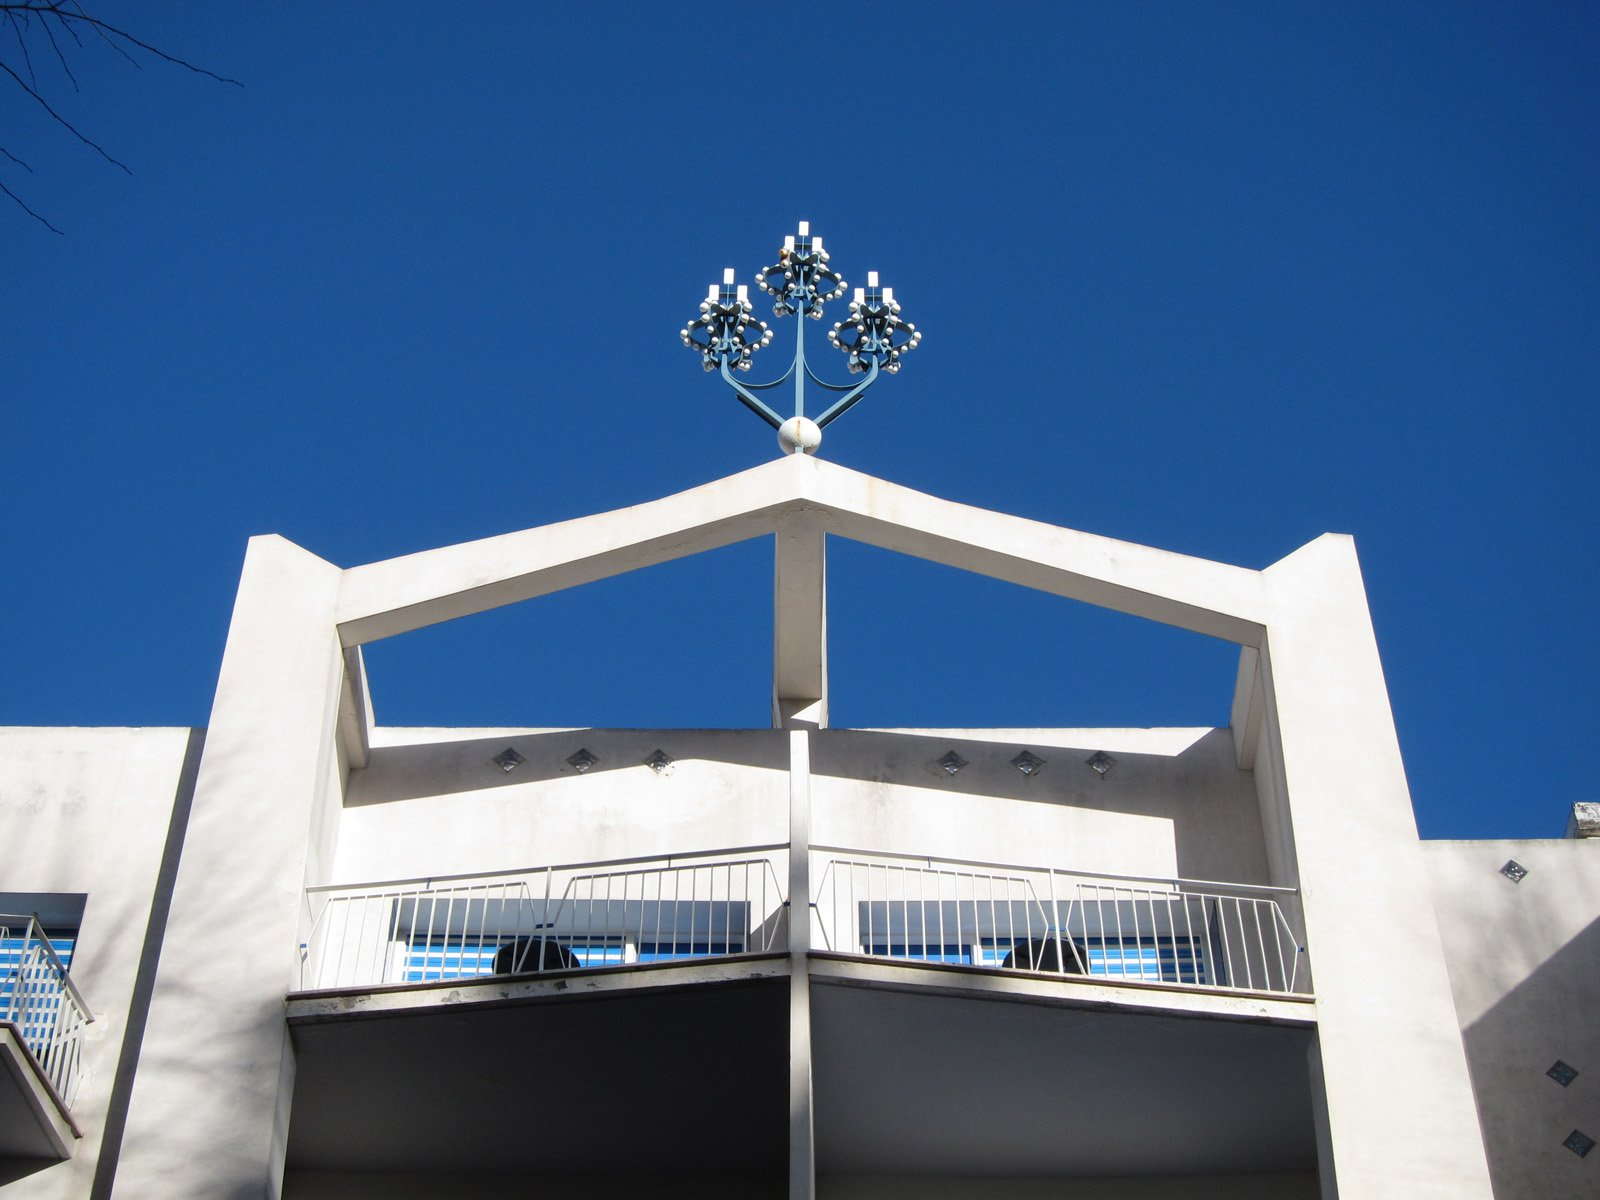 A fitting crown tops the Parco dei Principi hotel, Gio Ponti's Sorrento masterpiece.  Photo 1 of 29 in Gio Ponti's Parco dei Principi Hotel